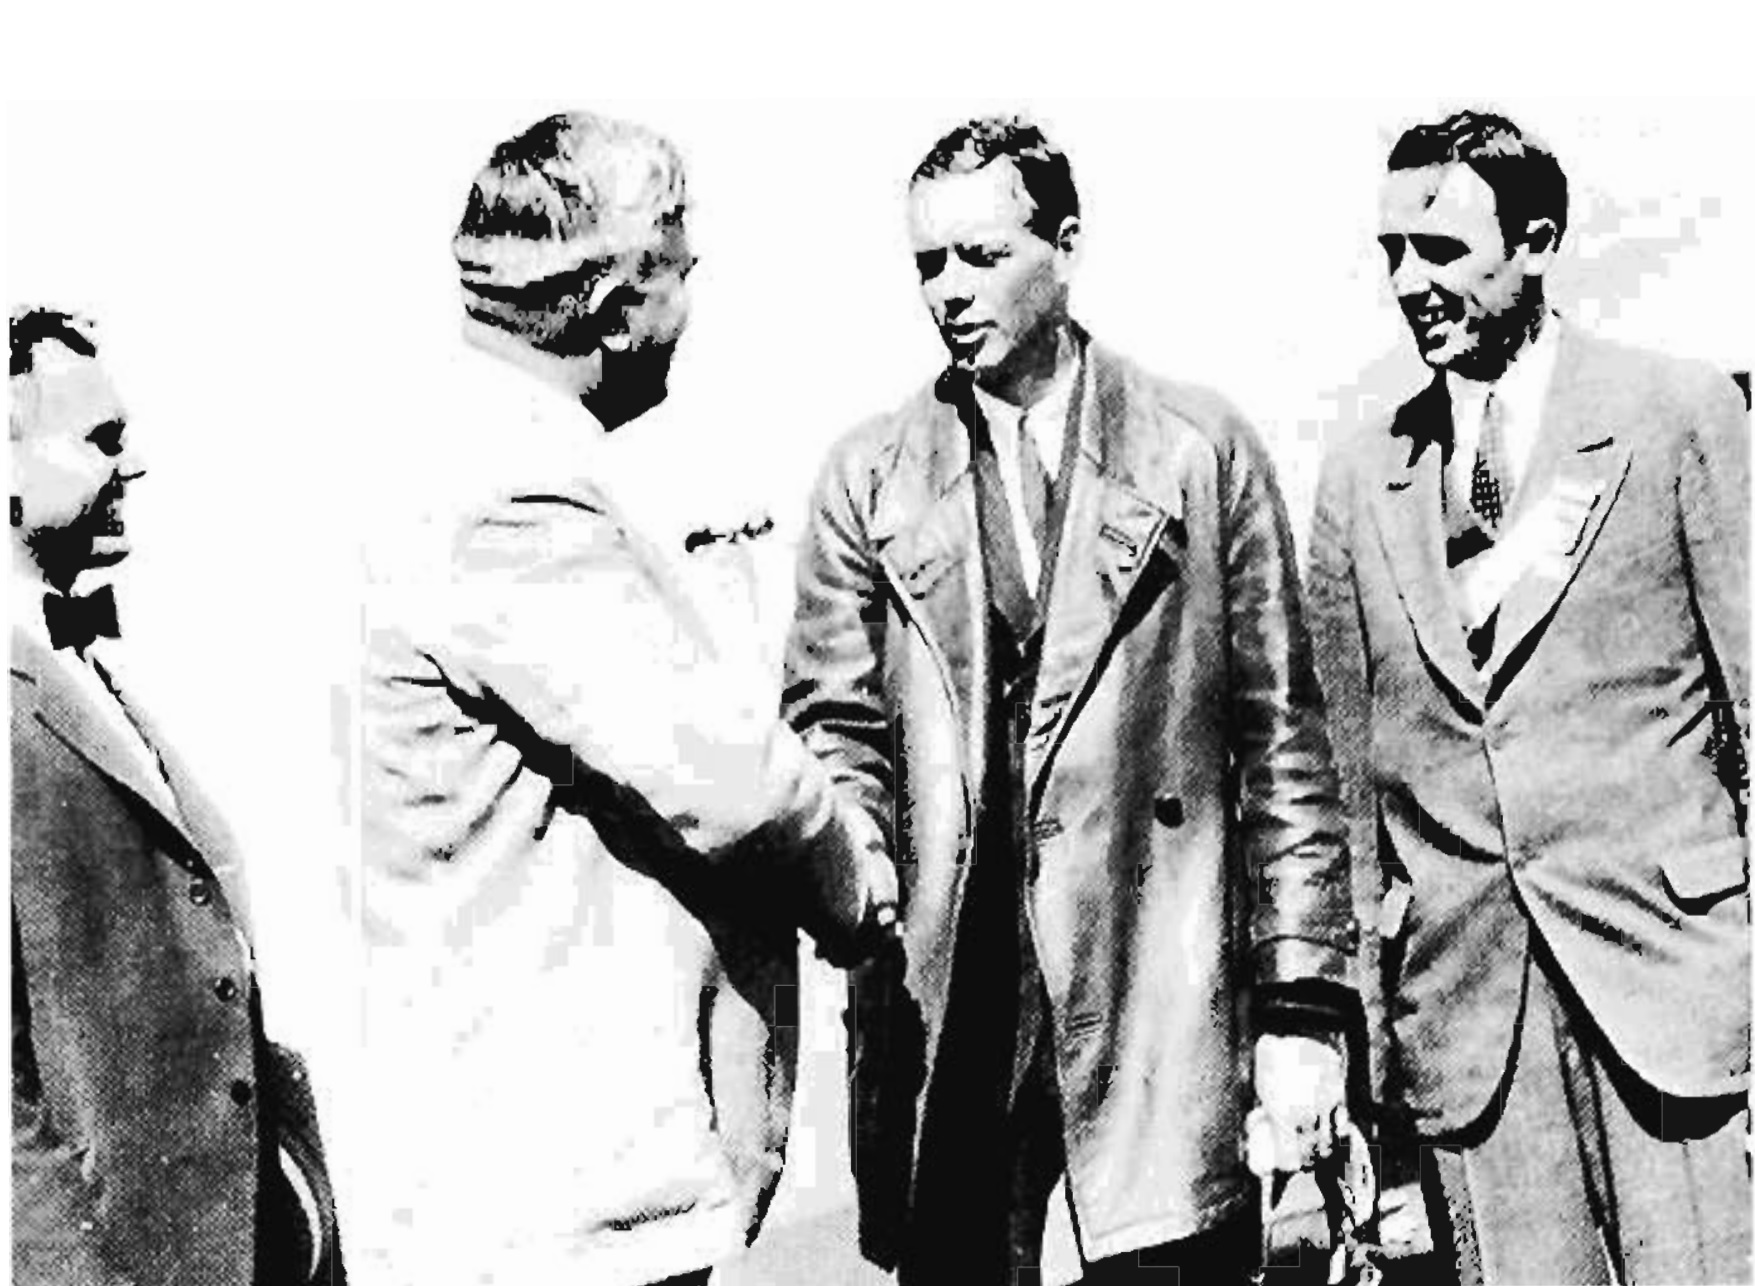 Upon landing at Little Falls, Lindbergh shook hands with Minnesota Governor Theodore Christianson while Mayor Grimes (right) looked on.